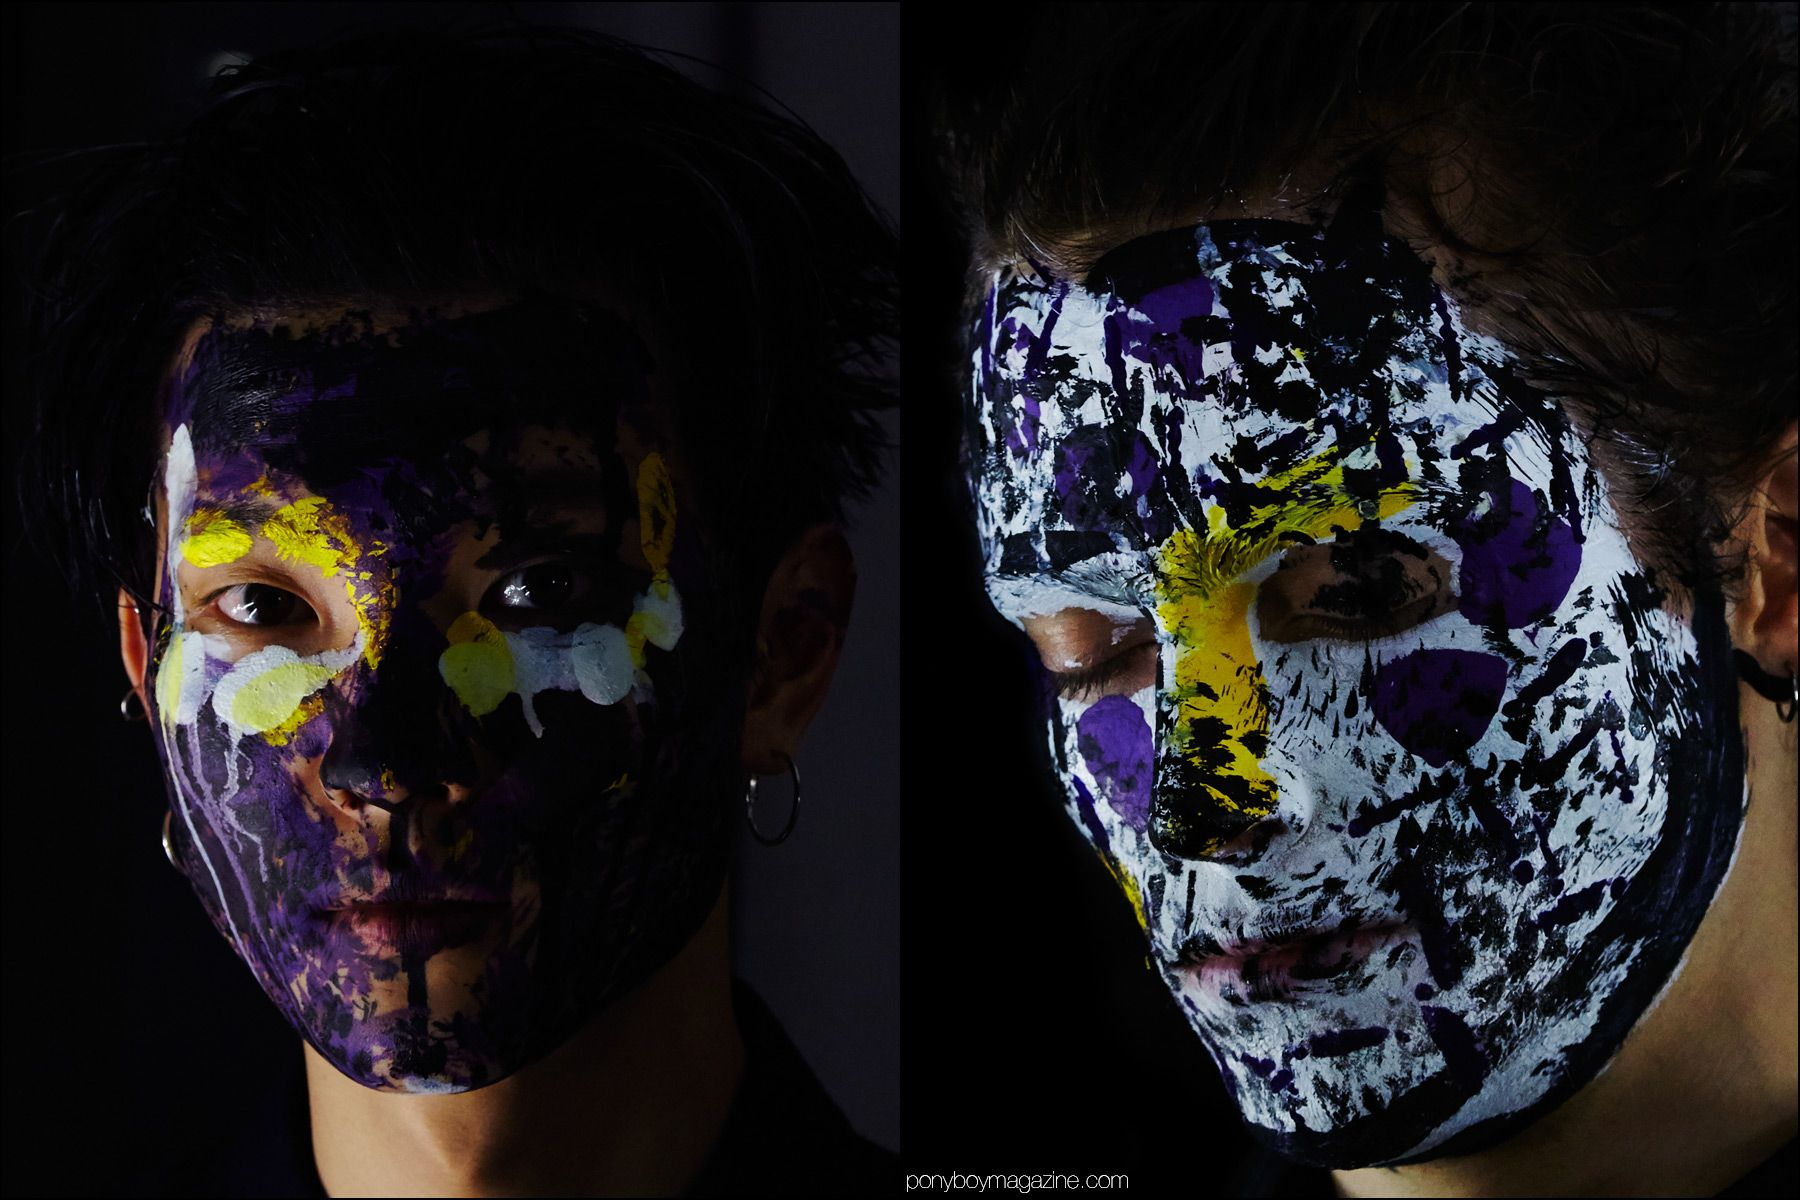 Male models in theatrical paint splattered makeup, photographed backstage at Siki Im + Den Im F/W16 menswear show. Photography by Alexander Thompson for Ponyboy magazine NY.